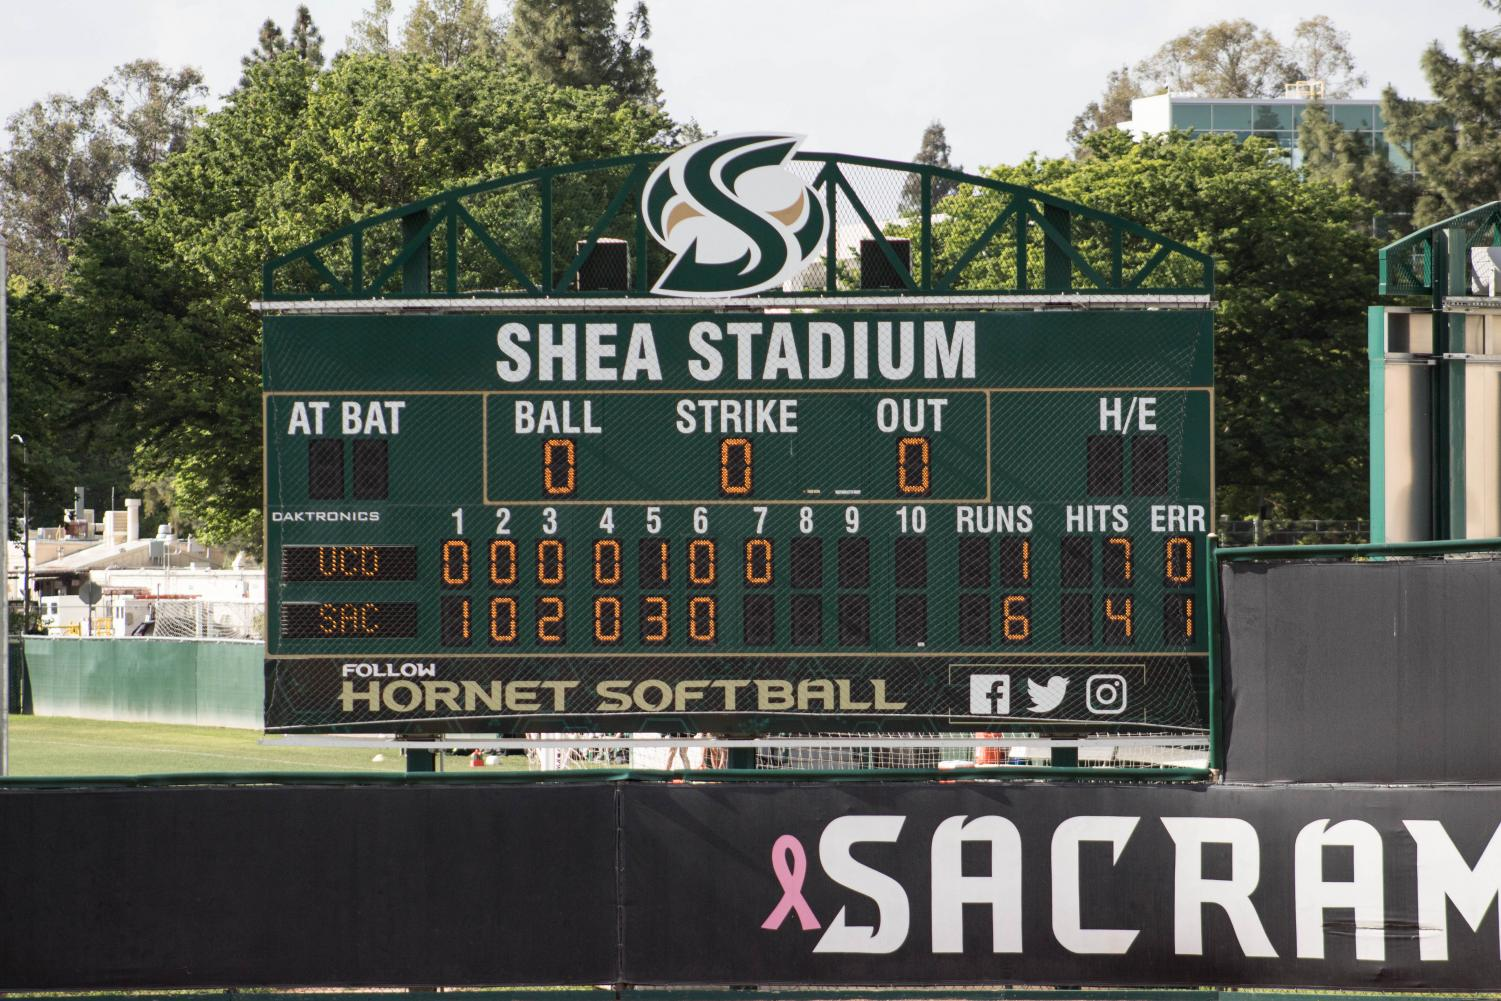 The+final+score+between+Sac+State+against+UC+Davis+Tuesday%2C+April+30.+The+final+score+was+6-1%2C+with+Sac+State+taking+the+win.